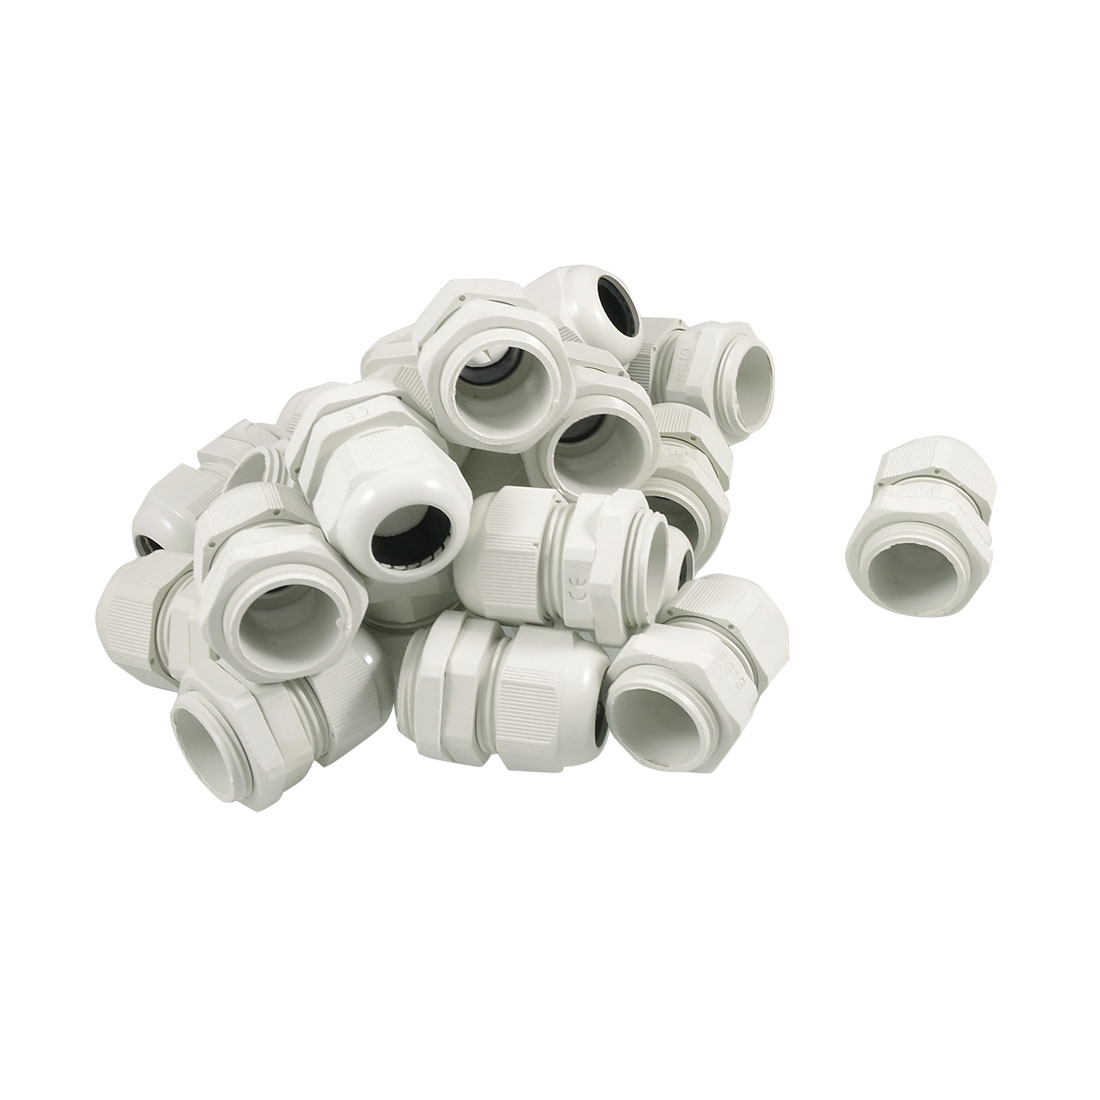 20 Pcs PG19 IP67 24mm Thread Diameter Waterproof White Plastic Cable Gland Fastener